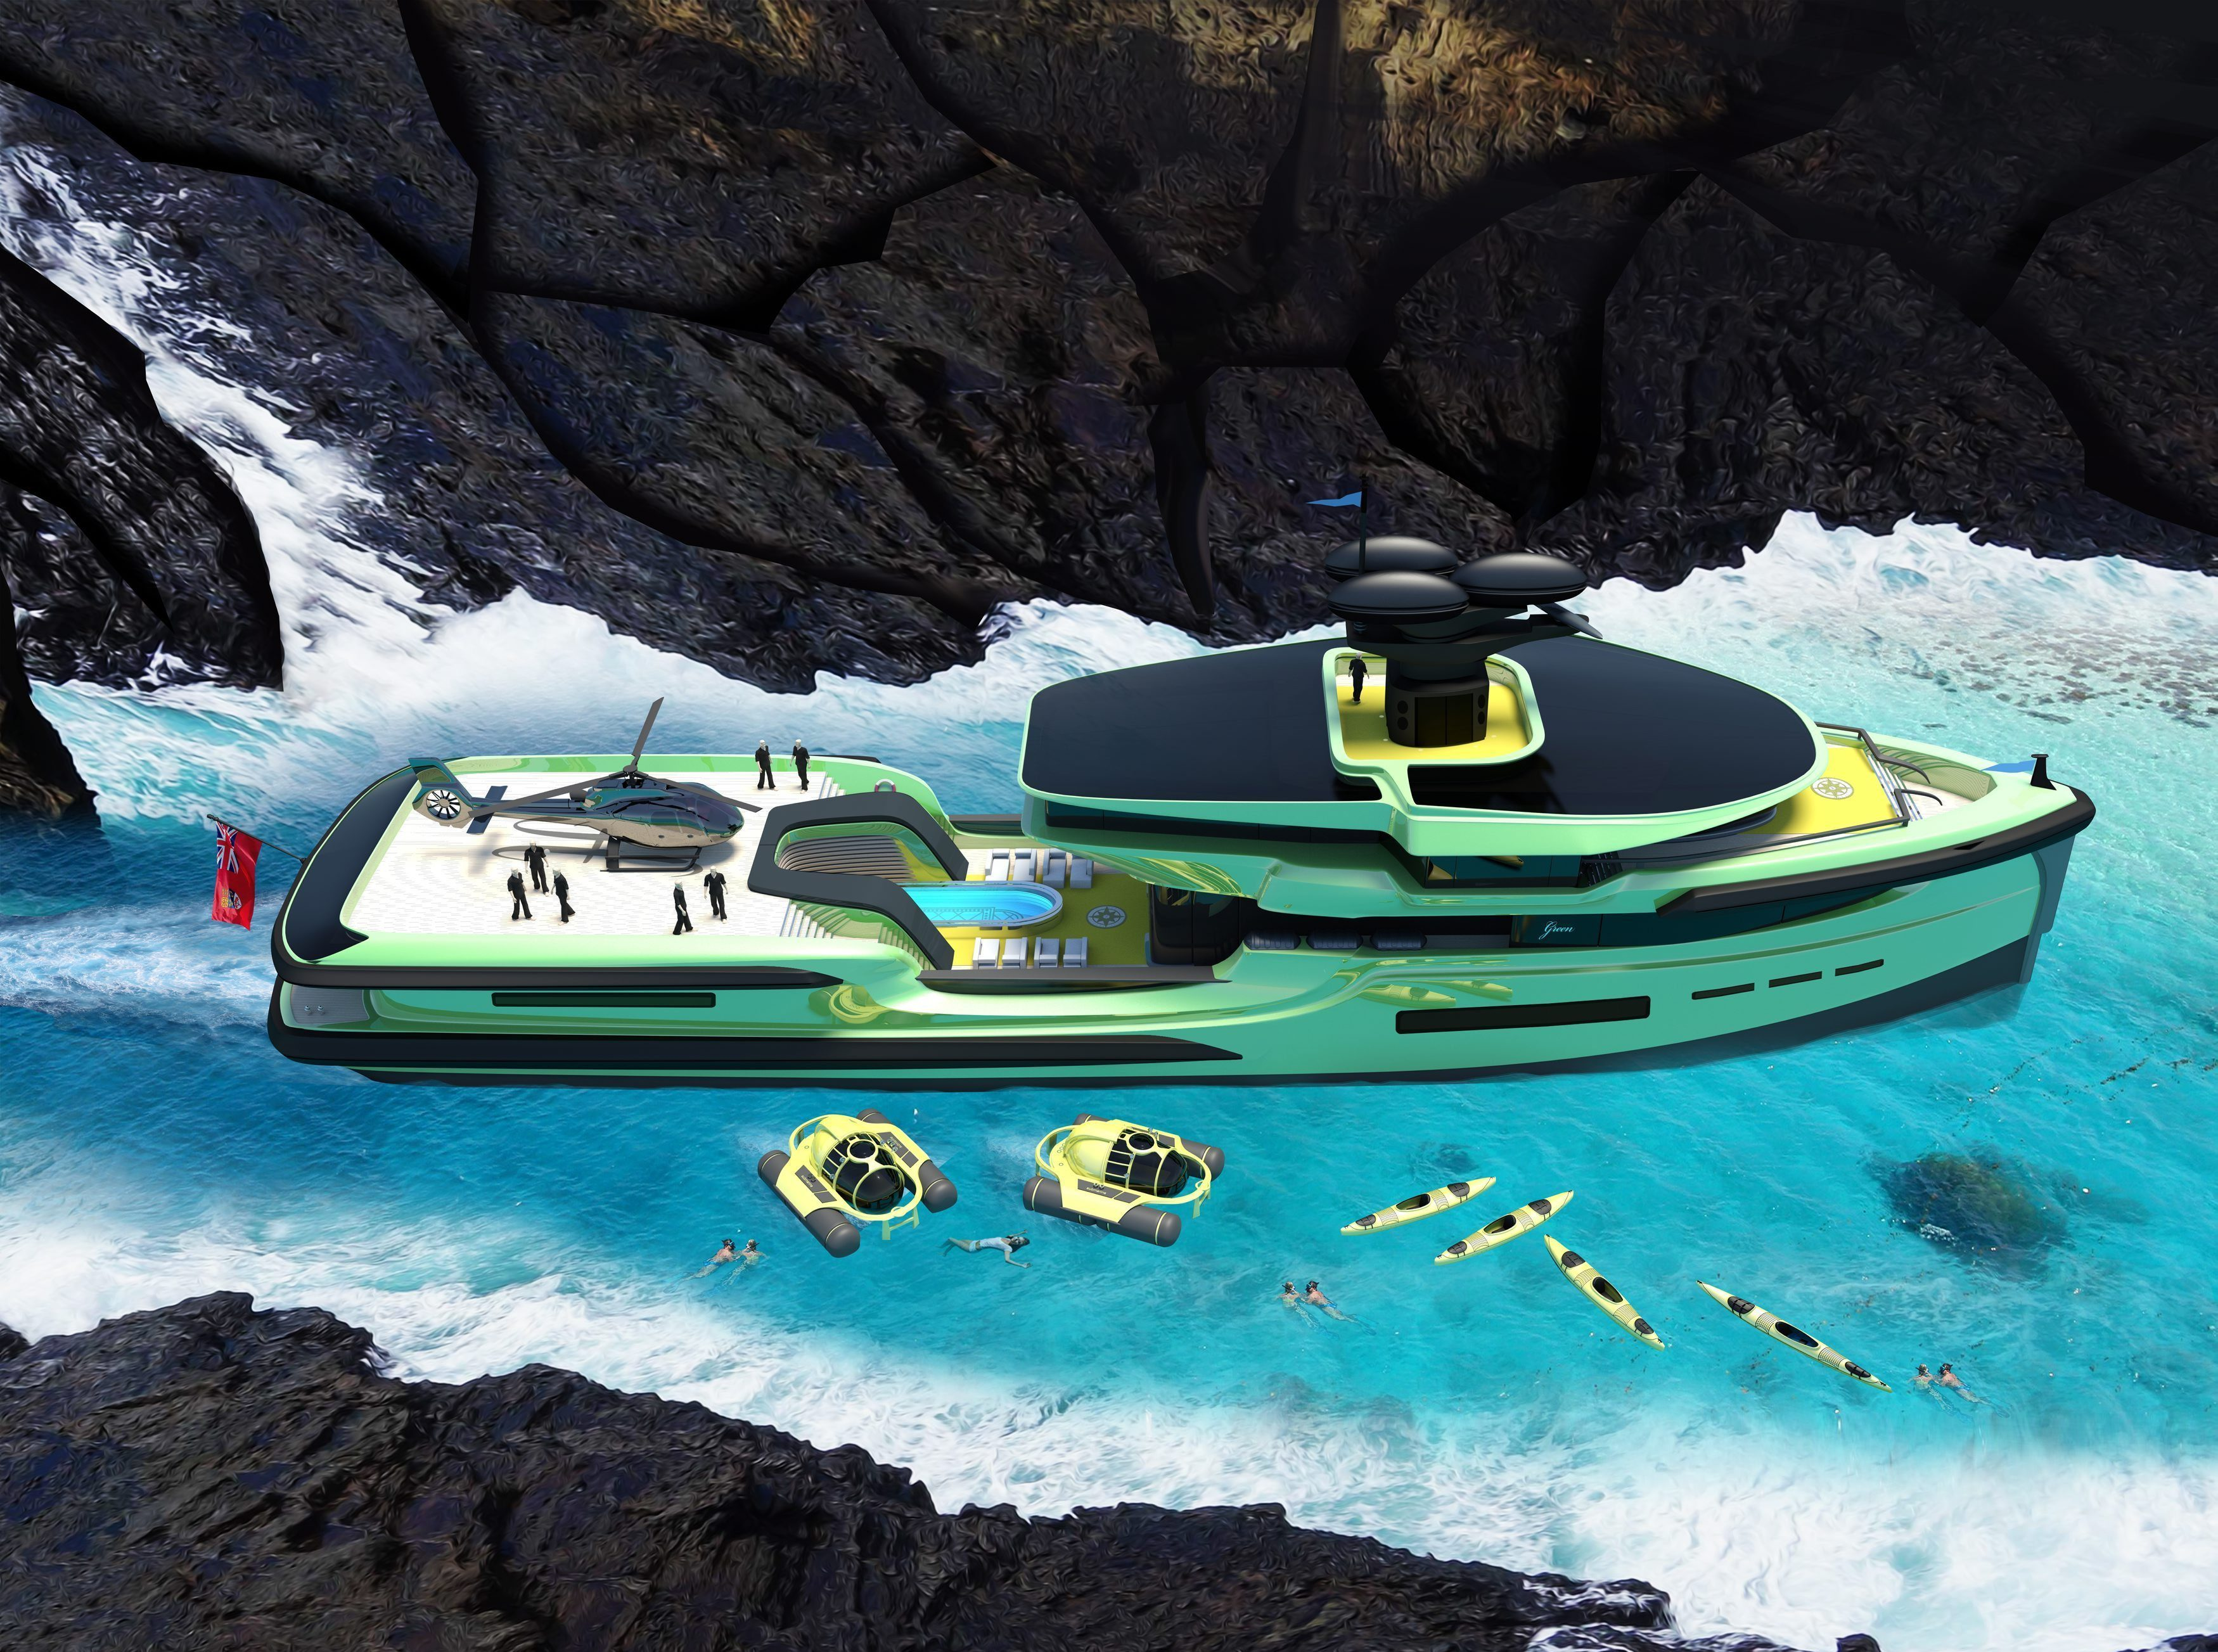 Green Expedition comes with its own helicopter, a heated pool and two mini-submarines